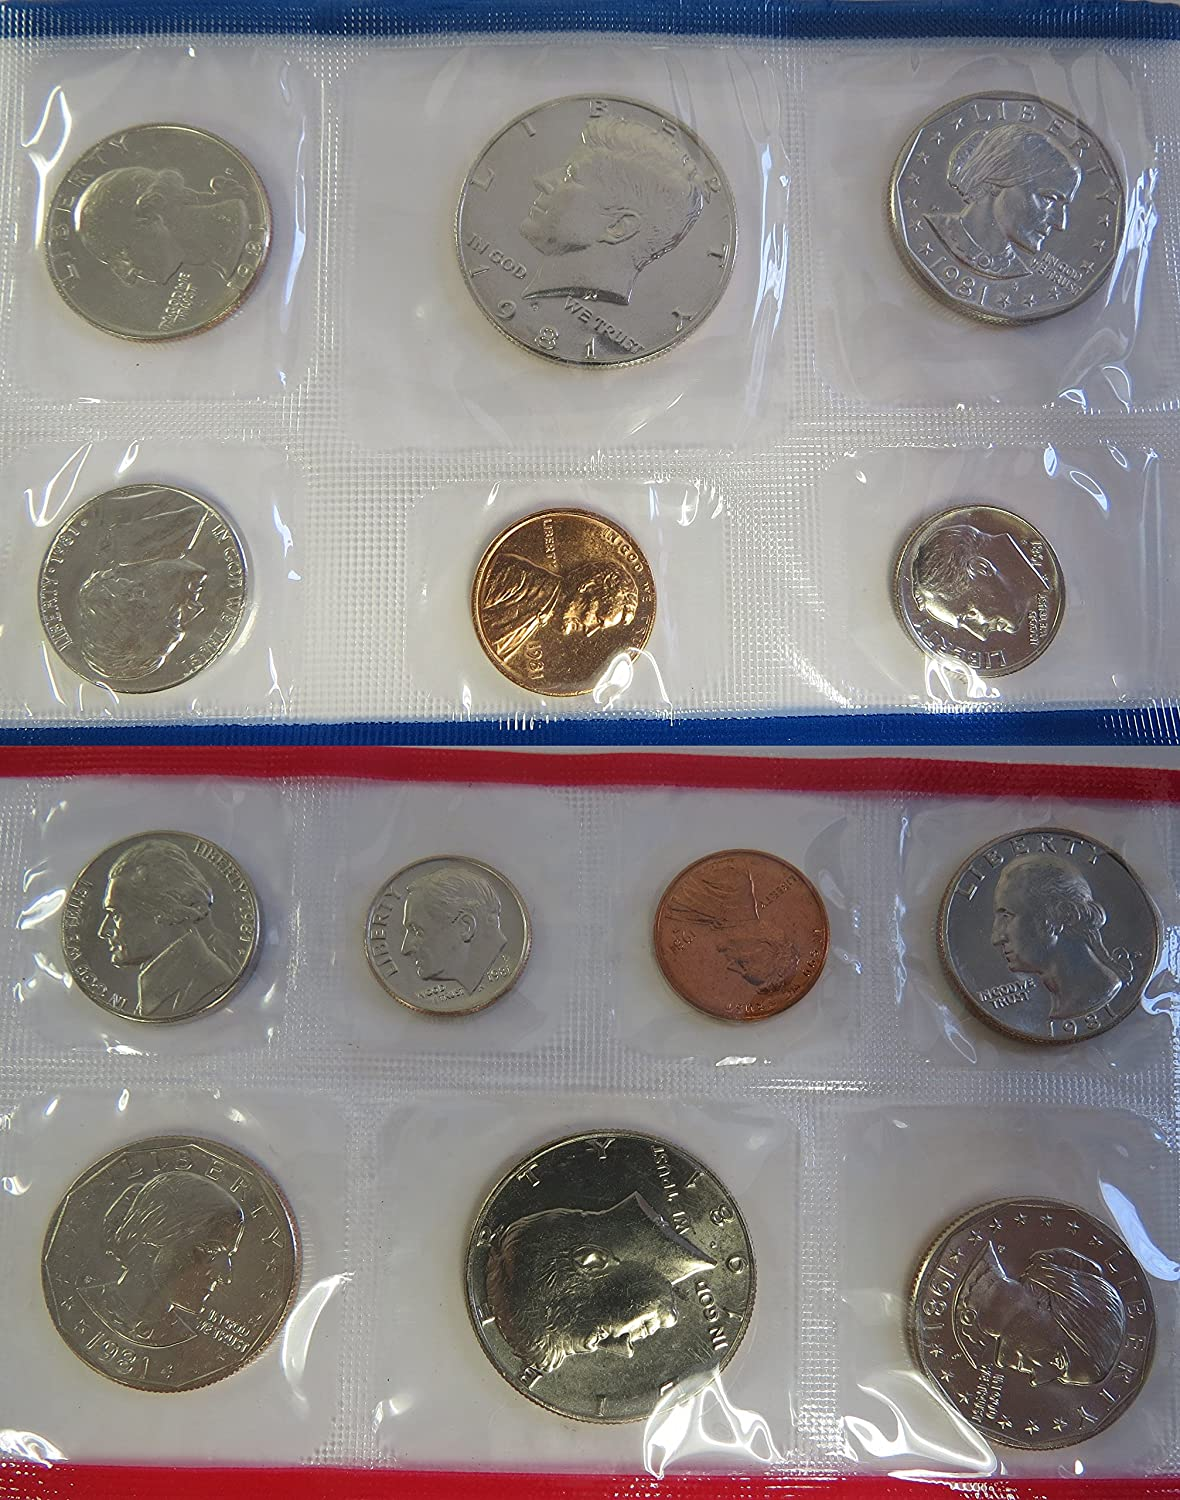 1963 P JEFFERSON NICKEL FROM MINT SET IN MINT CELLOPHANE--SHIPS FREE!!